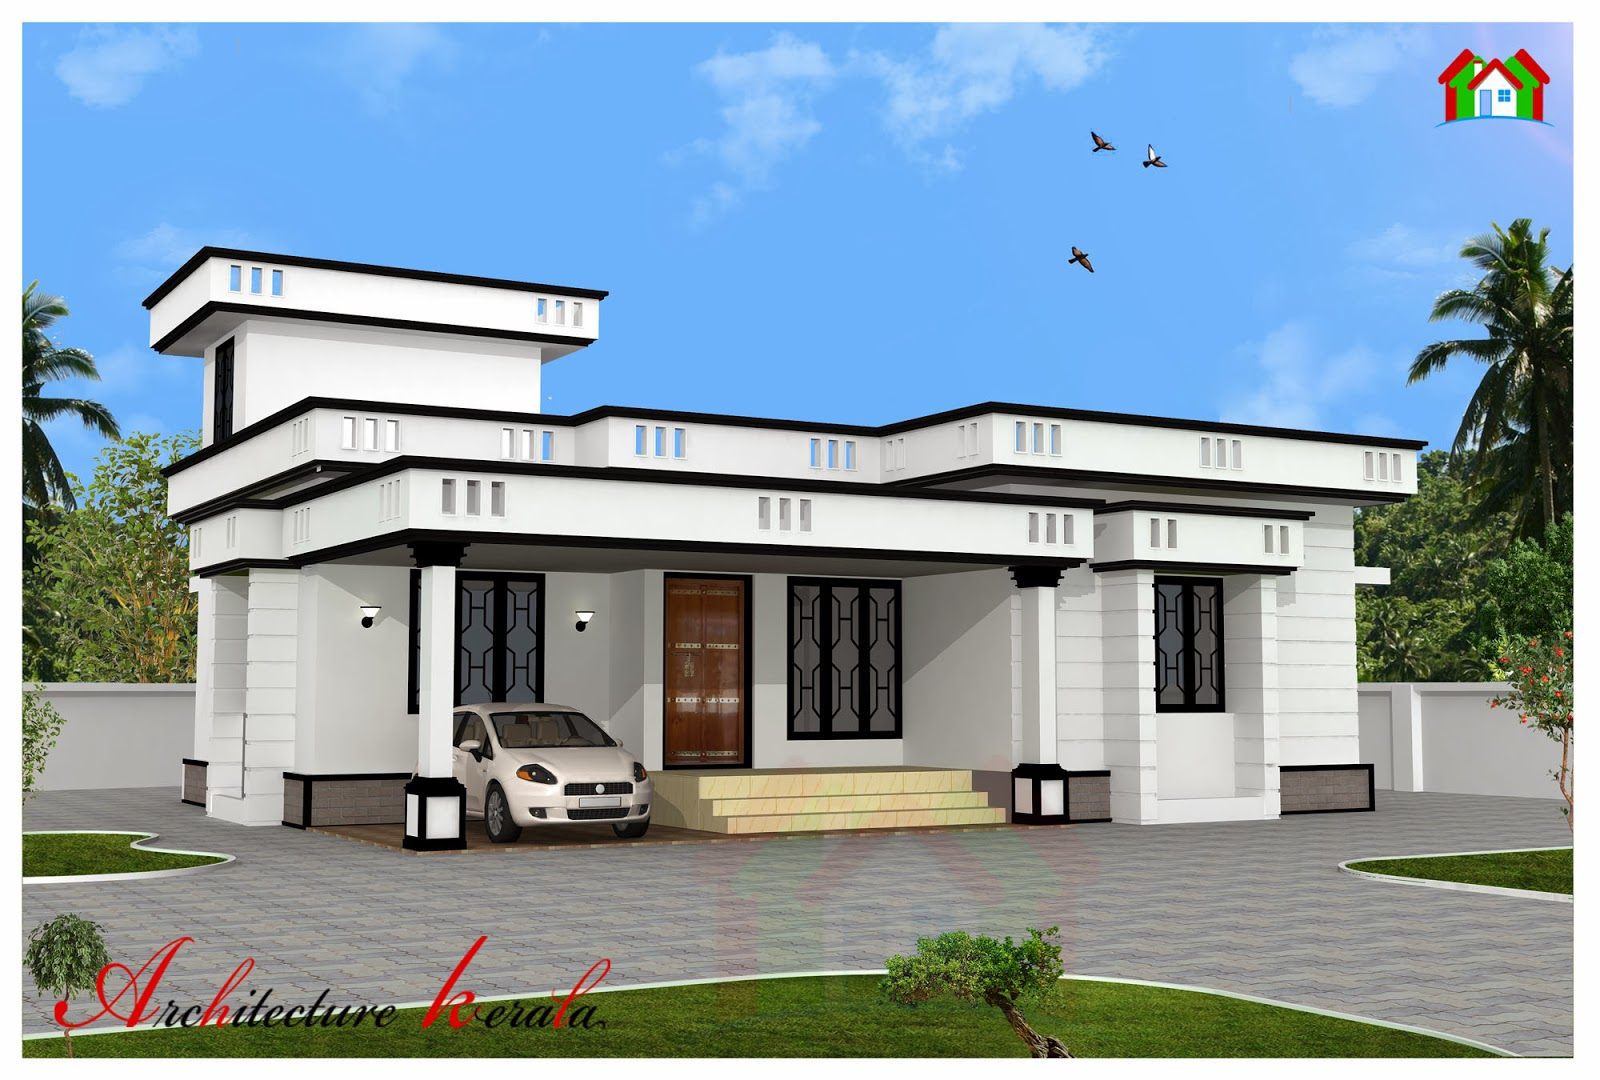 1200 square feet two bedroom house plan and elevation architecture